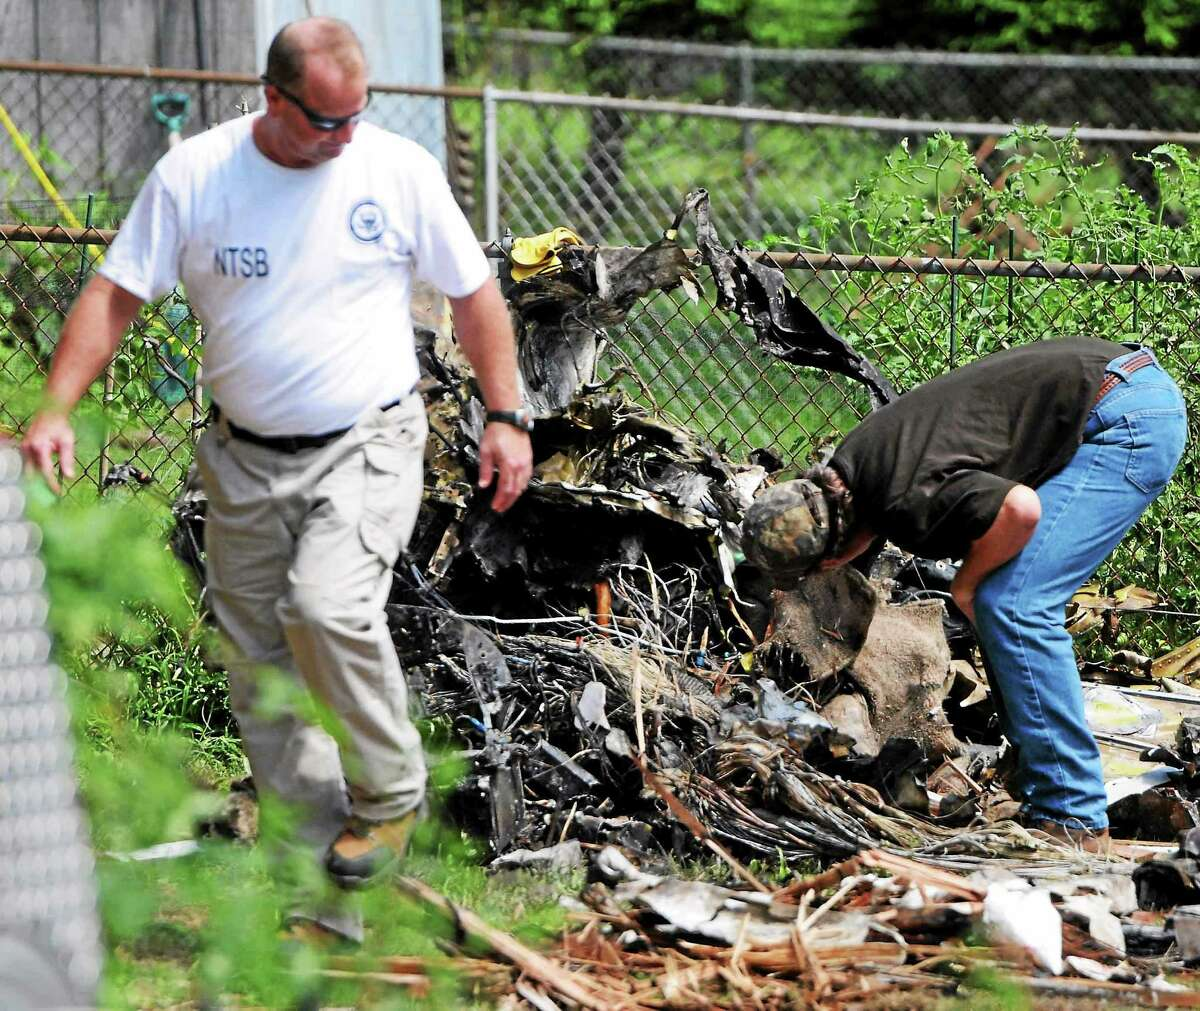 NTSB investigators and recovery team at scene Saturday August 10, 2013 of the plane crash that hit two houses Friday afternoon, August 9. 2013 at 64 and 68 Charter Oak Avenue between James and Gordon Streets in East Haven, Connecticut.